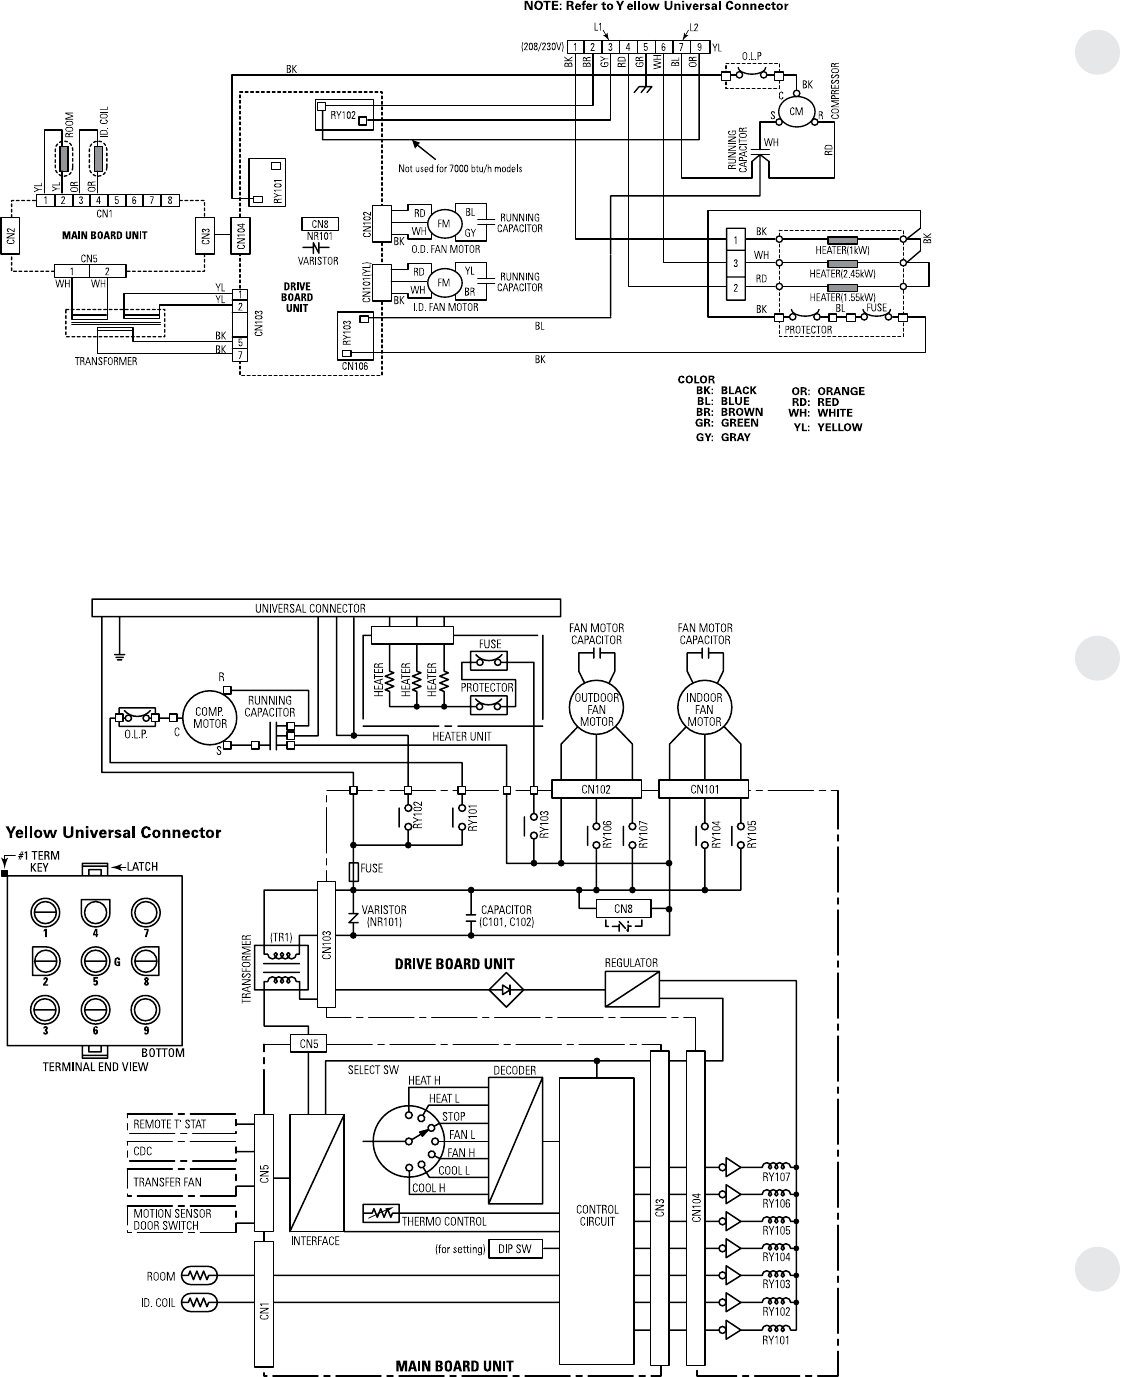 heil wiring diagrams pdf with Ge Zoneline 2600 Wiring Diagrams on Diagram Cub Wiring Car Ph 0845 978566 in addition Goodman Heat Pump Air Handler Wiring Diagram together with Goodman Ac Wiring Diagram besides York Wiring Diagrams together with Waltco Solenoid Wiring Diagram.